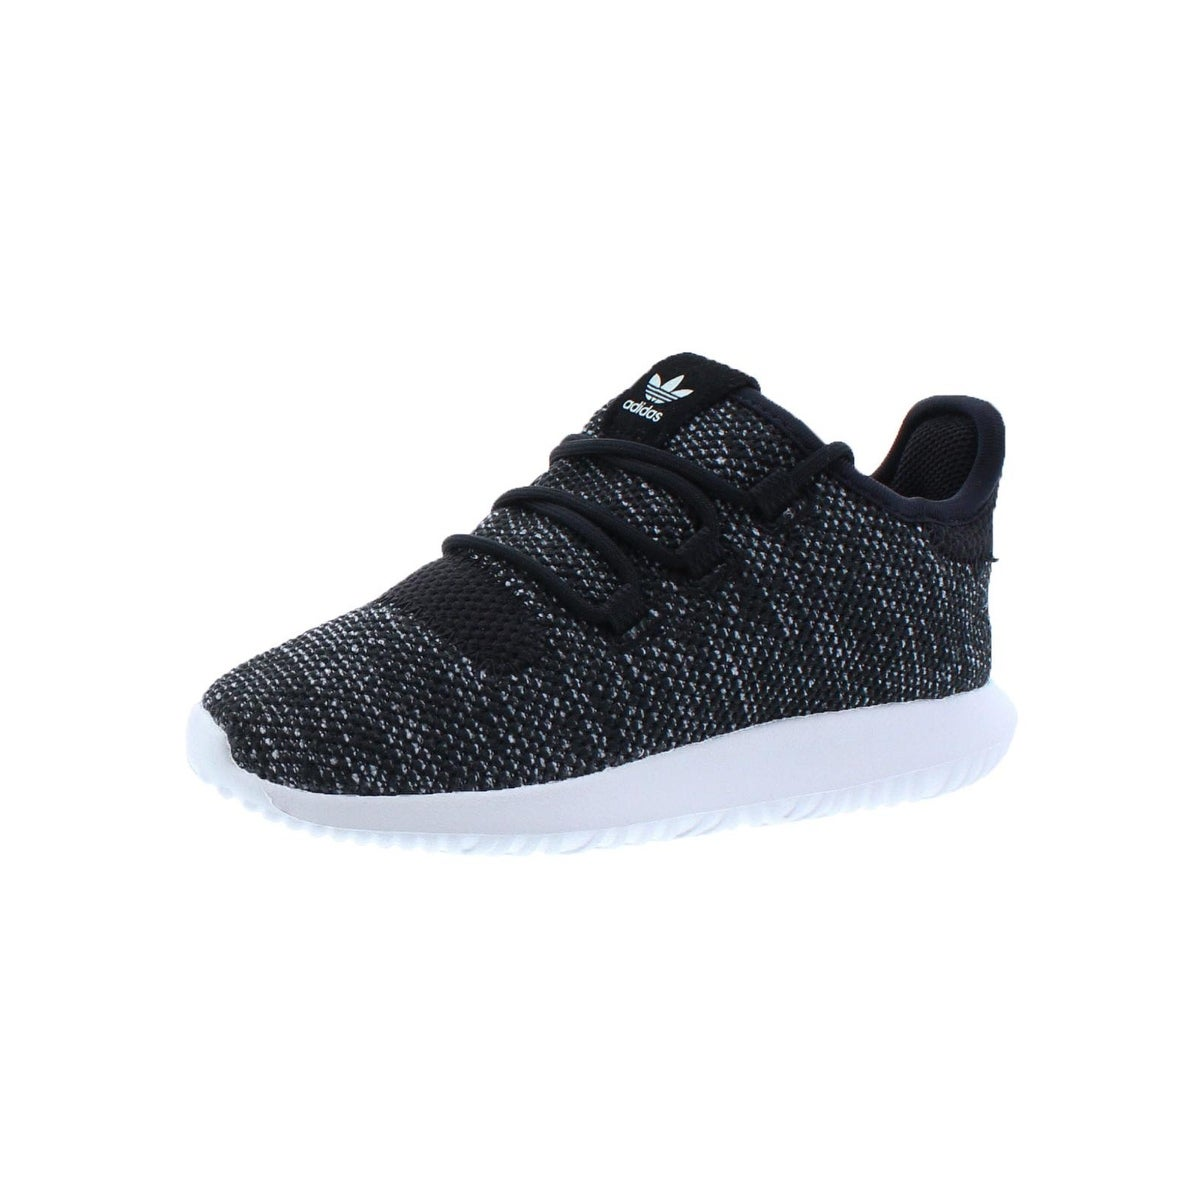 357a76fee76 adidas Originals Boys Tubular Shadow Knit I Fashion Sneakers Toddler  Ortholite - 9.5 medium (d) toddler